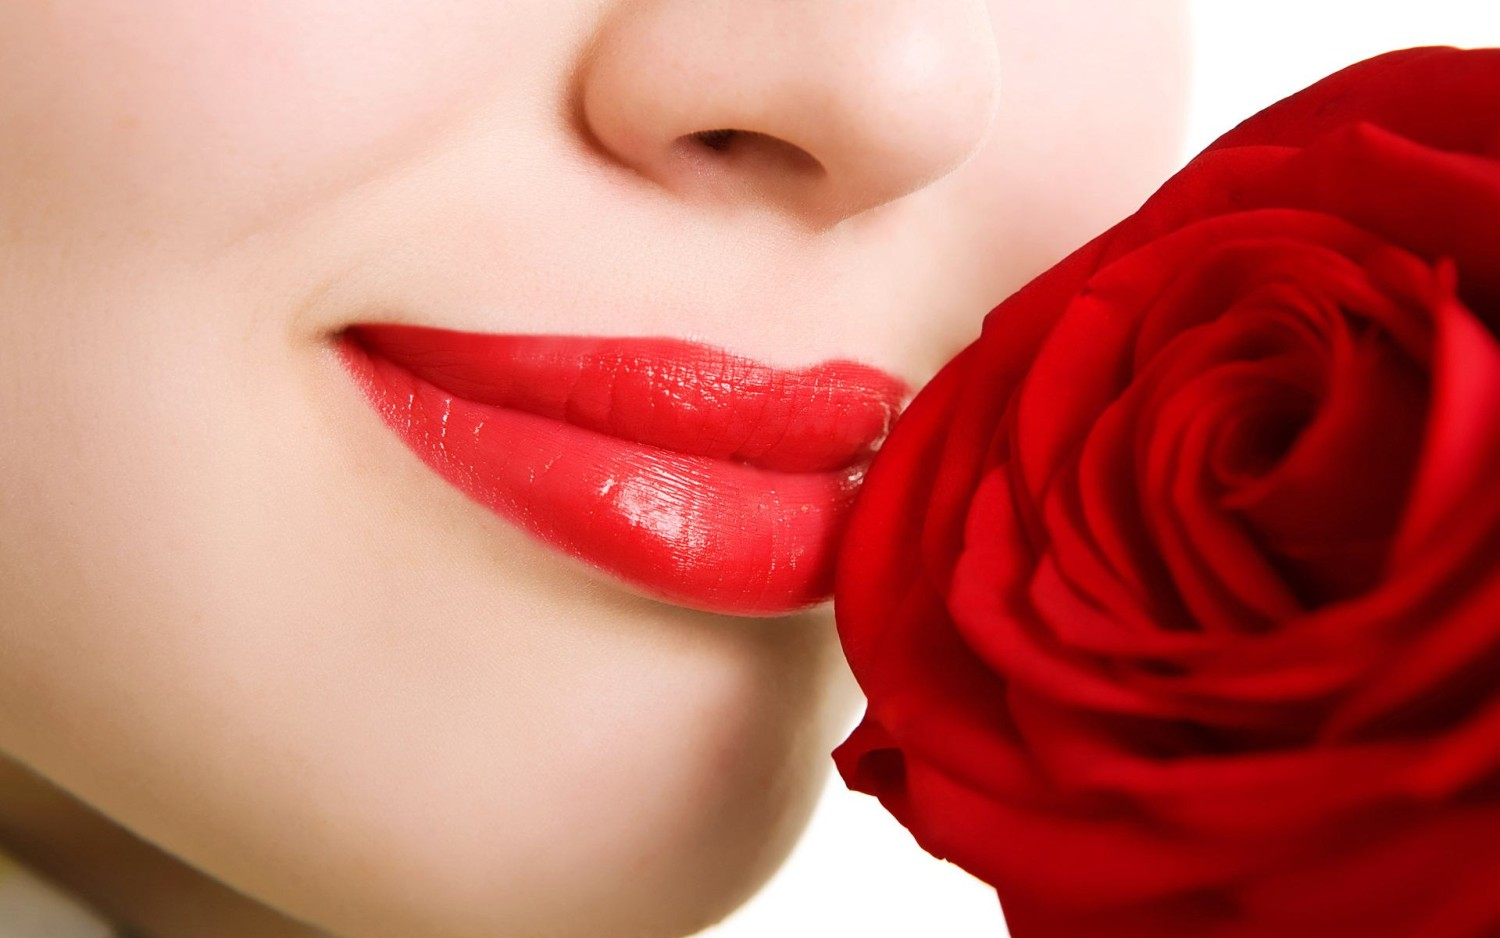 red-rose-flower-and-lips-wallpaper-1500x938